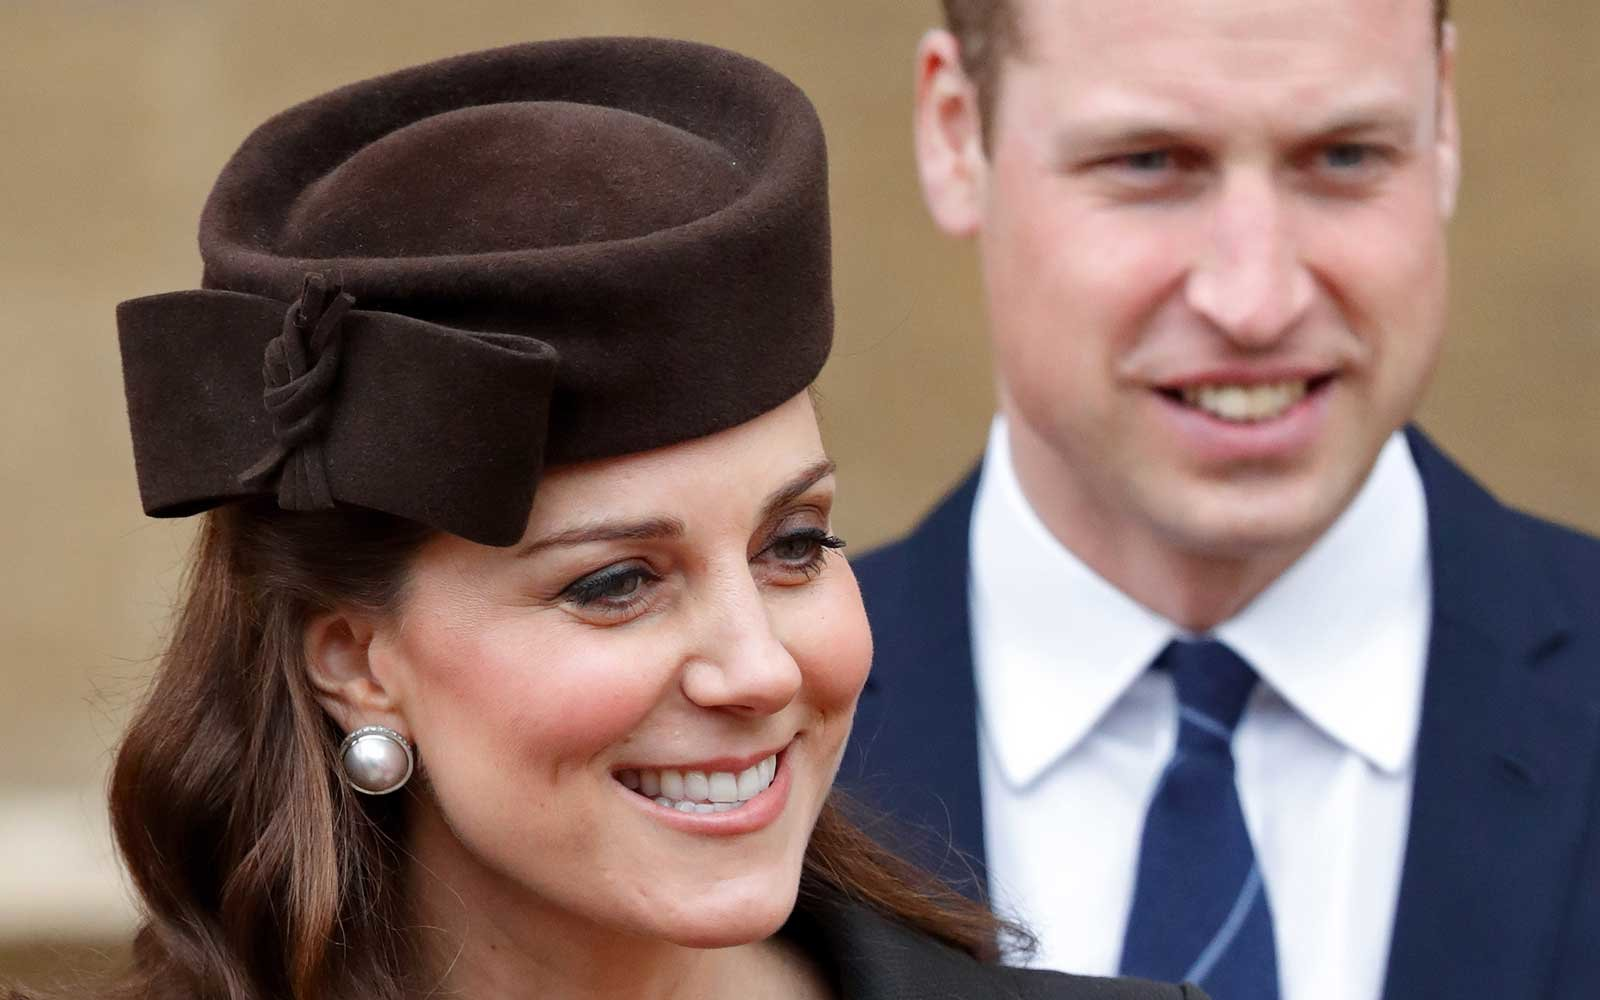 Prince William Drops Massive Hint About The Royal Baby's Gender